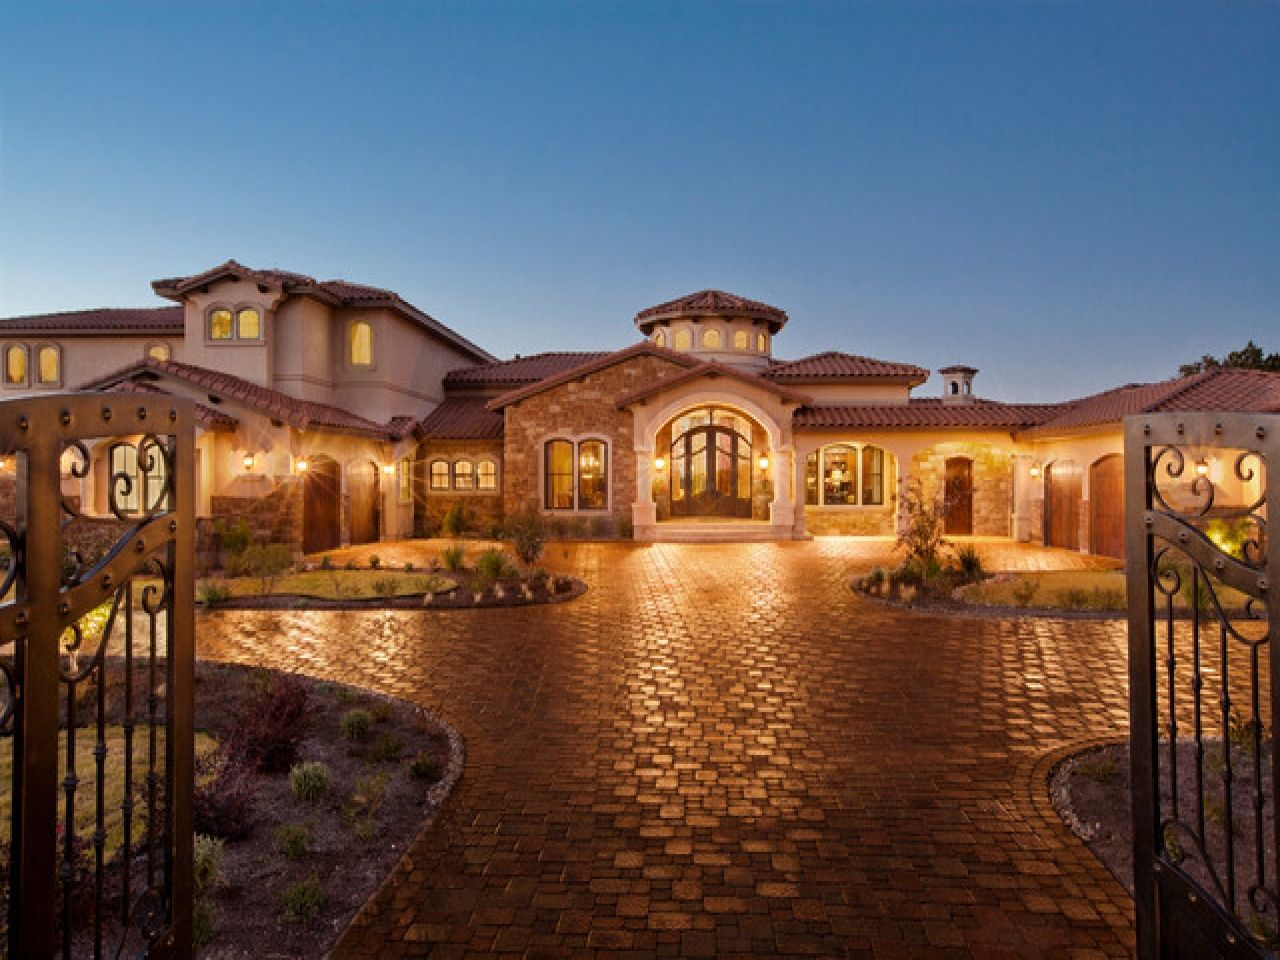 Most Expensive Fancy Houses In The World Best Luxury Homes Exterior Fancy Houses Mediterranean Homes